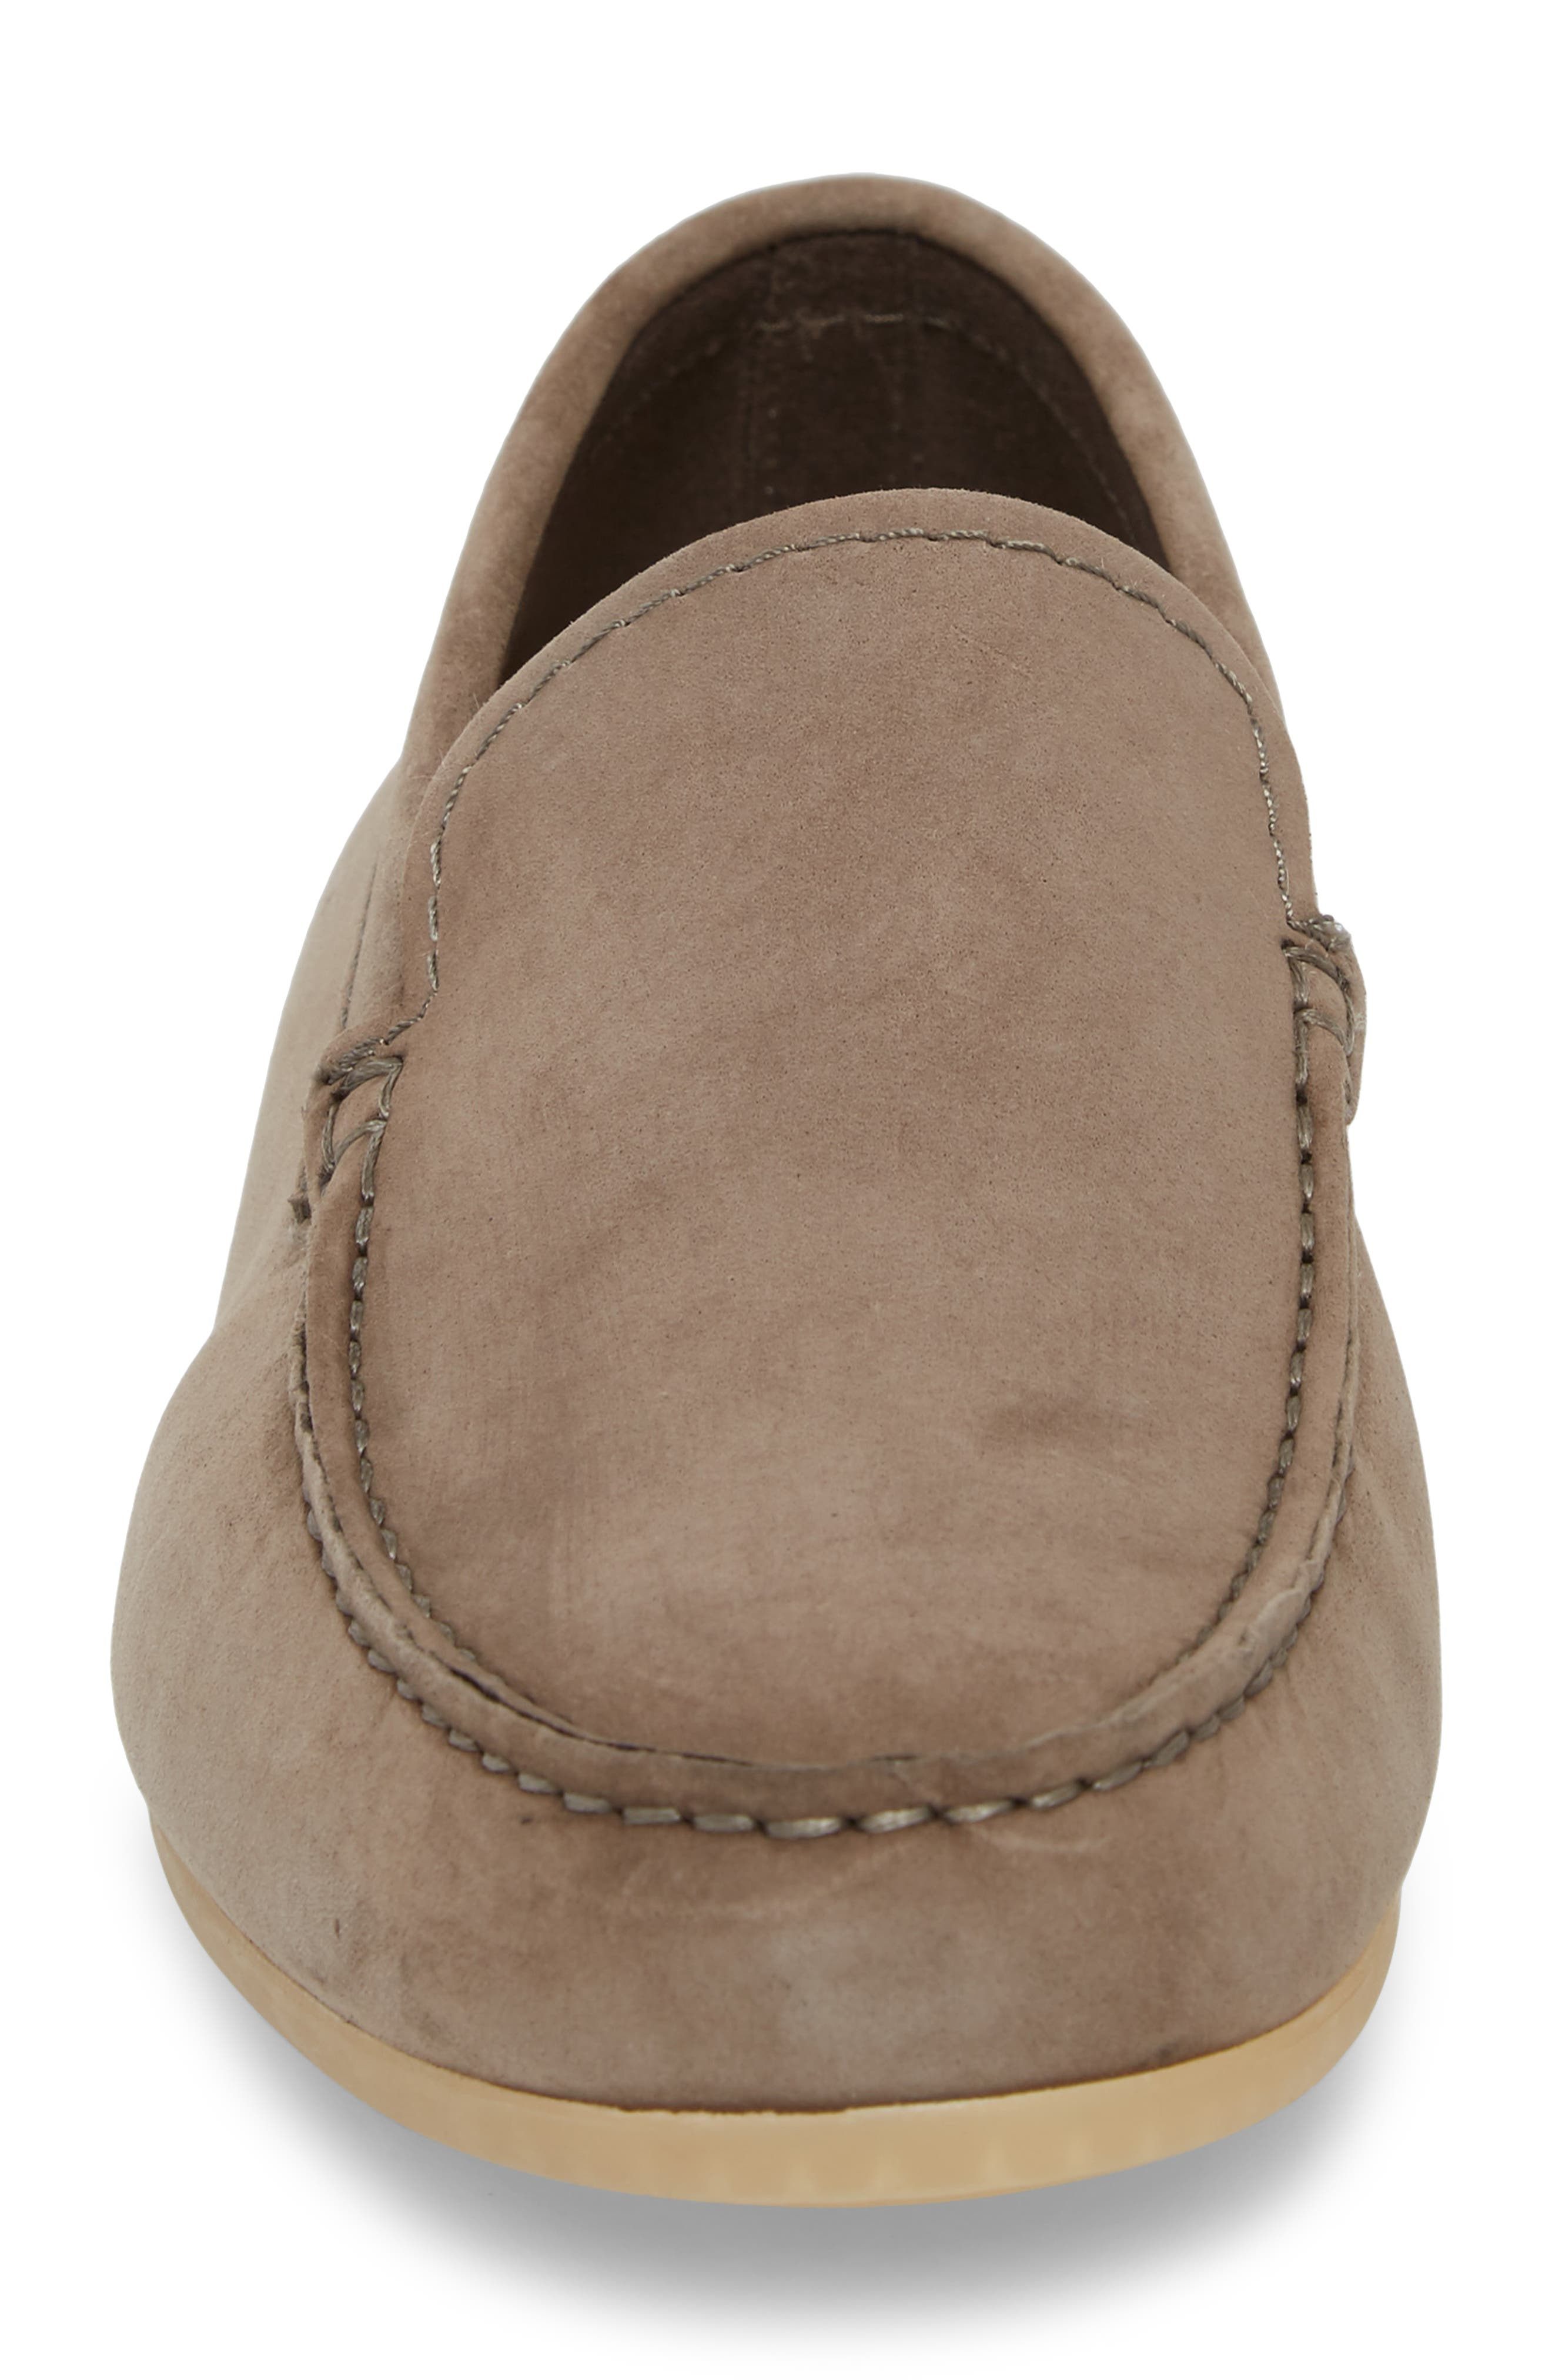 Clarks<sup>®</sup> Reazor Edge Driving Moccasin,                             Alternate thumbnail 4, color,                             SAGE NUBUCK